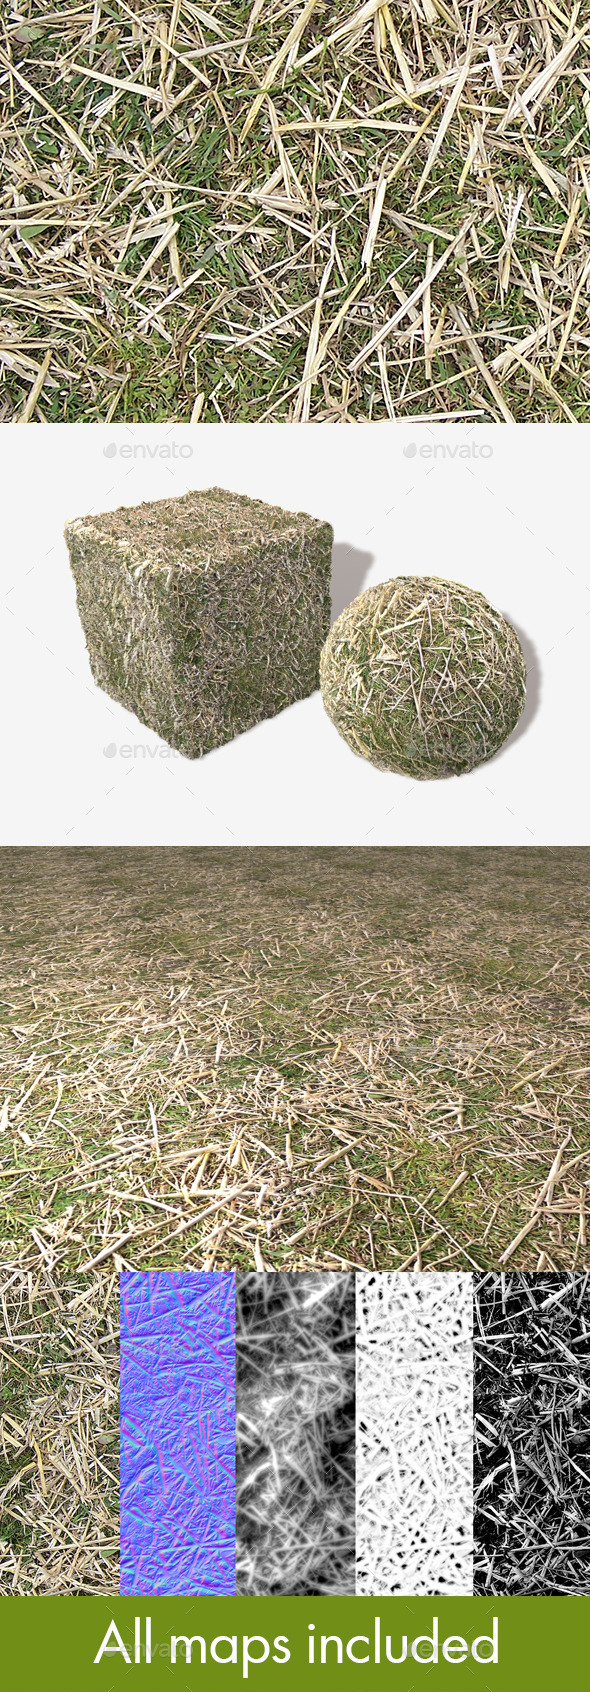 Straw on Grass Seamless Texture